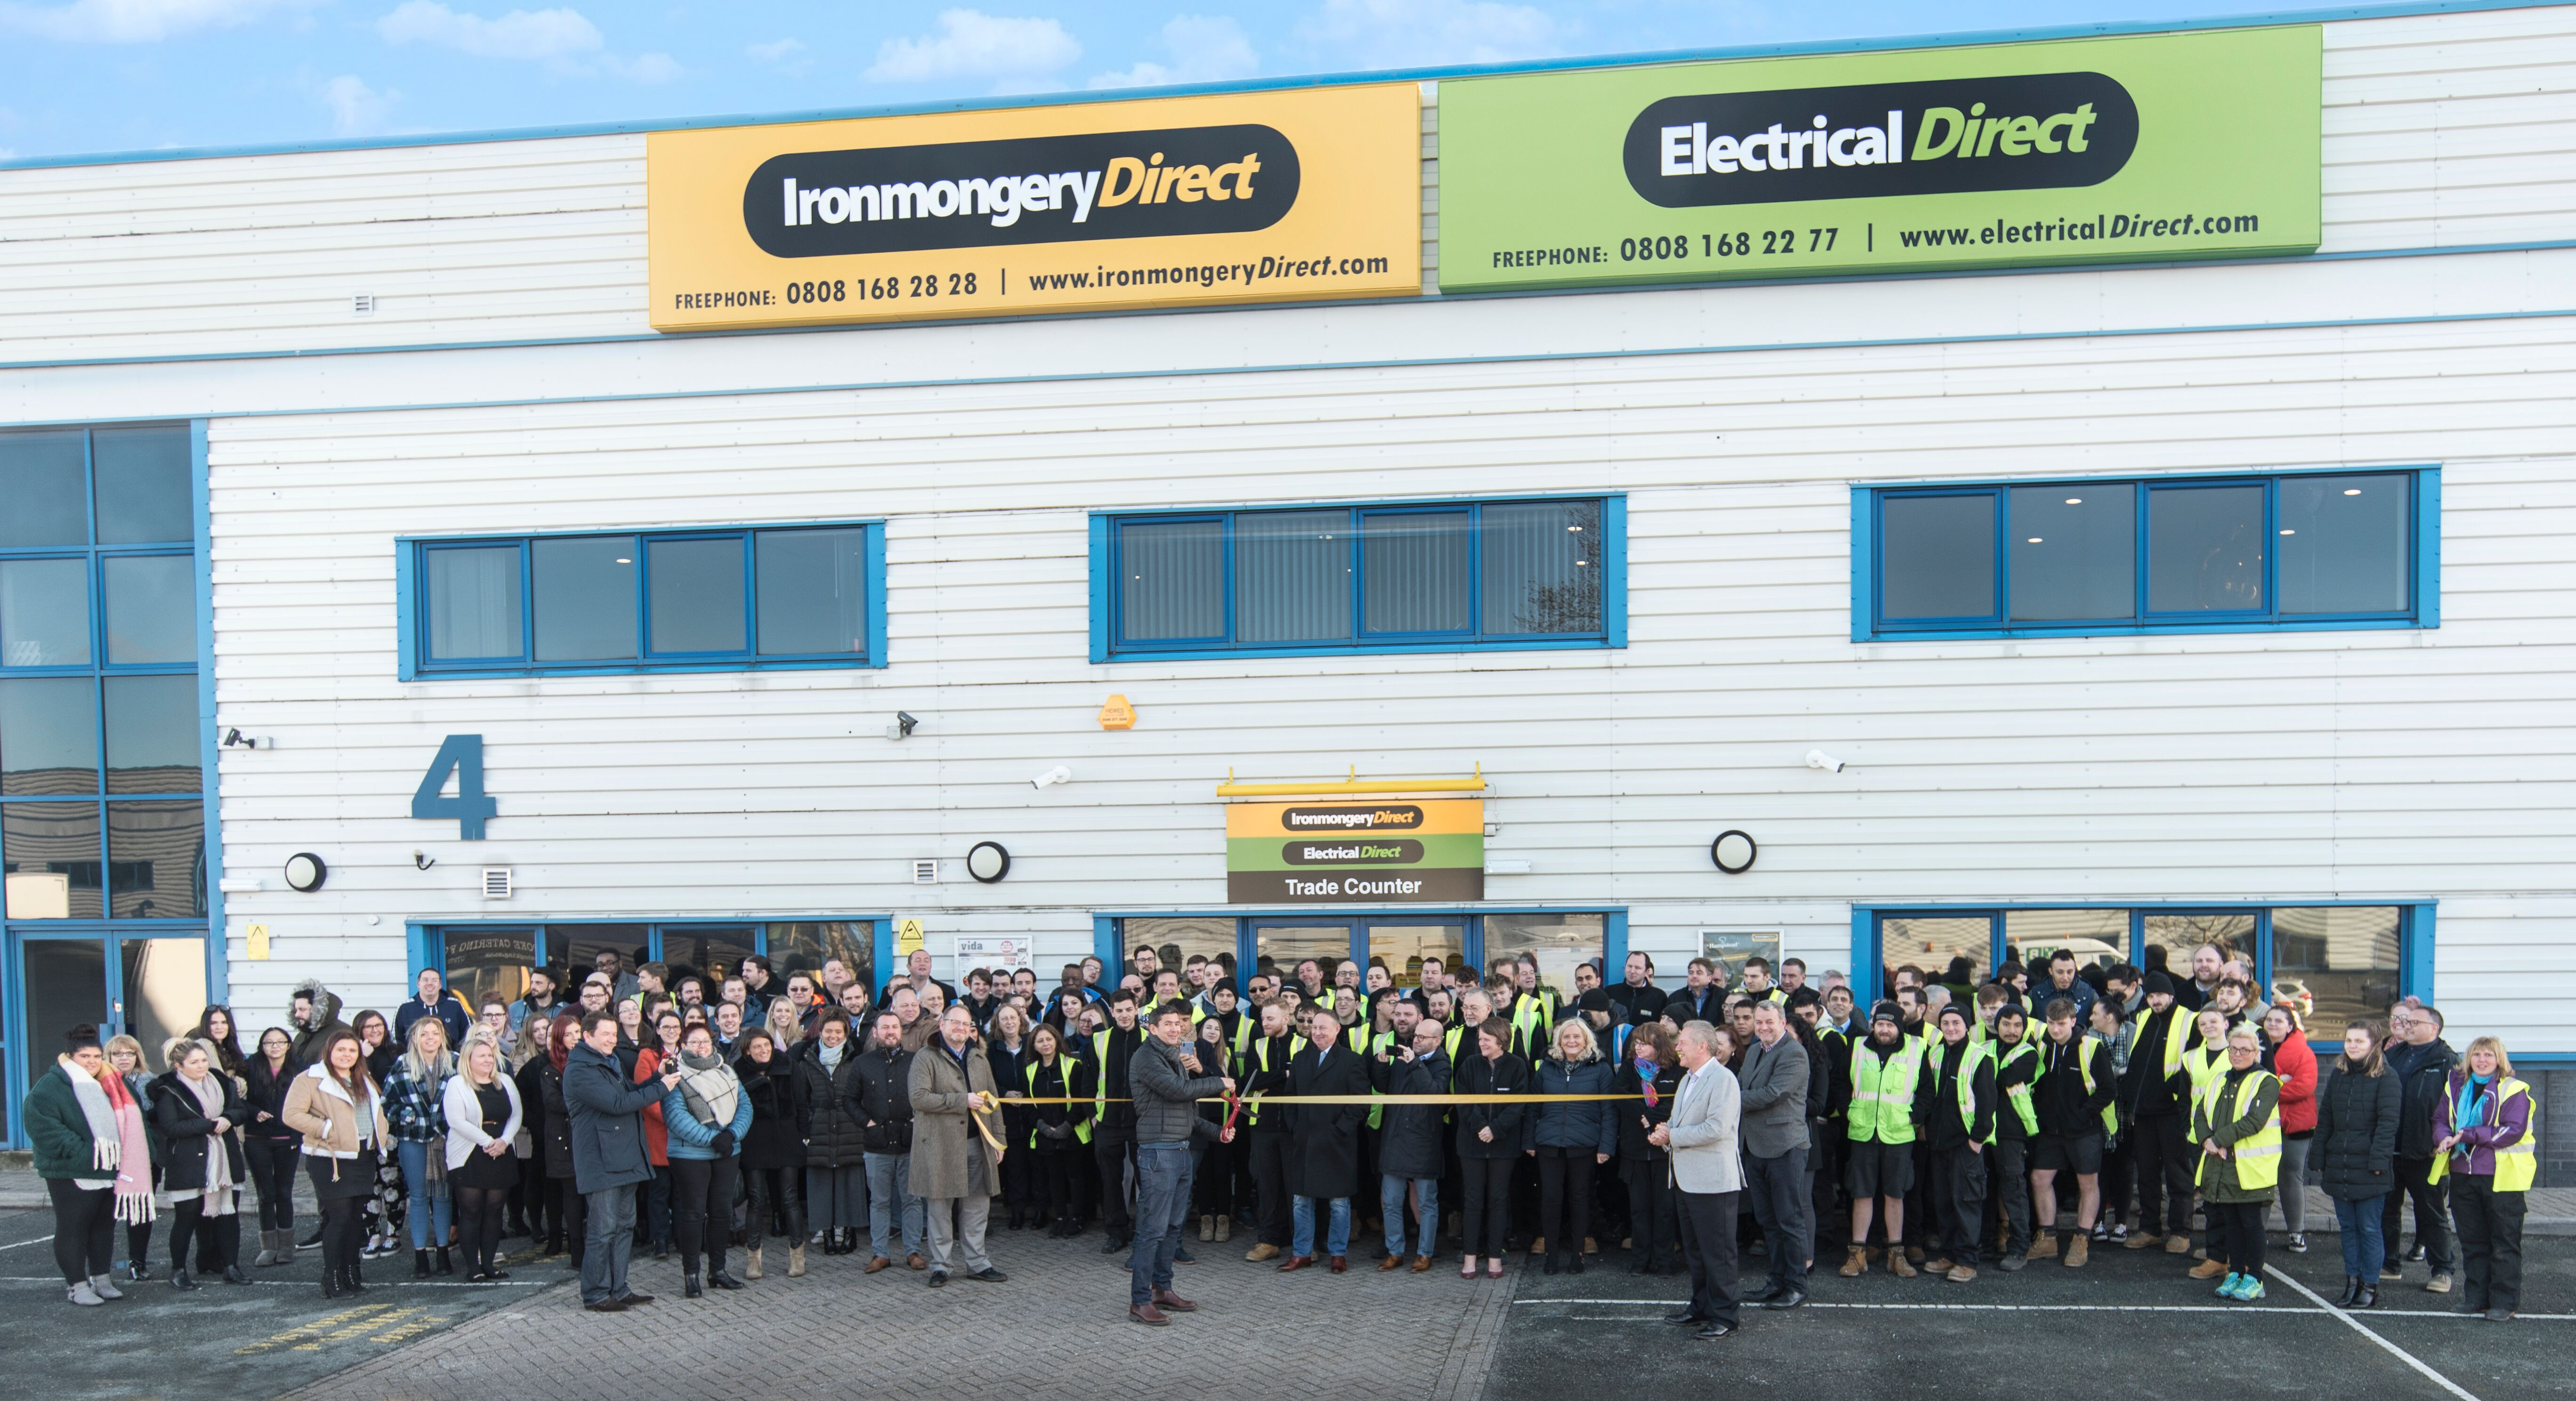 IronmongeryDirect and ElectricalDirect completes major distribution centre expansion and adds 1000's of new products